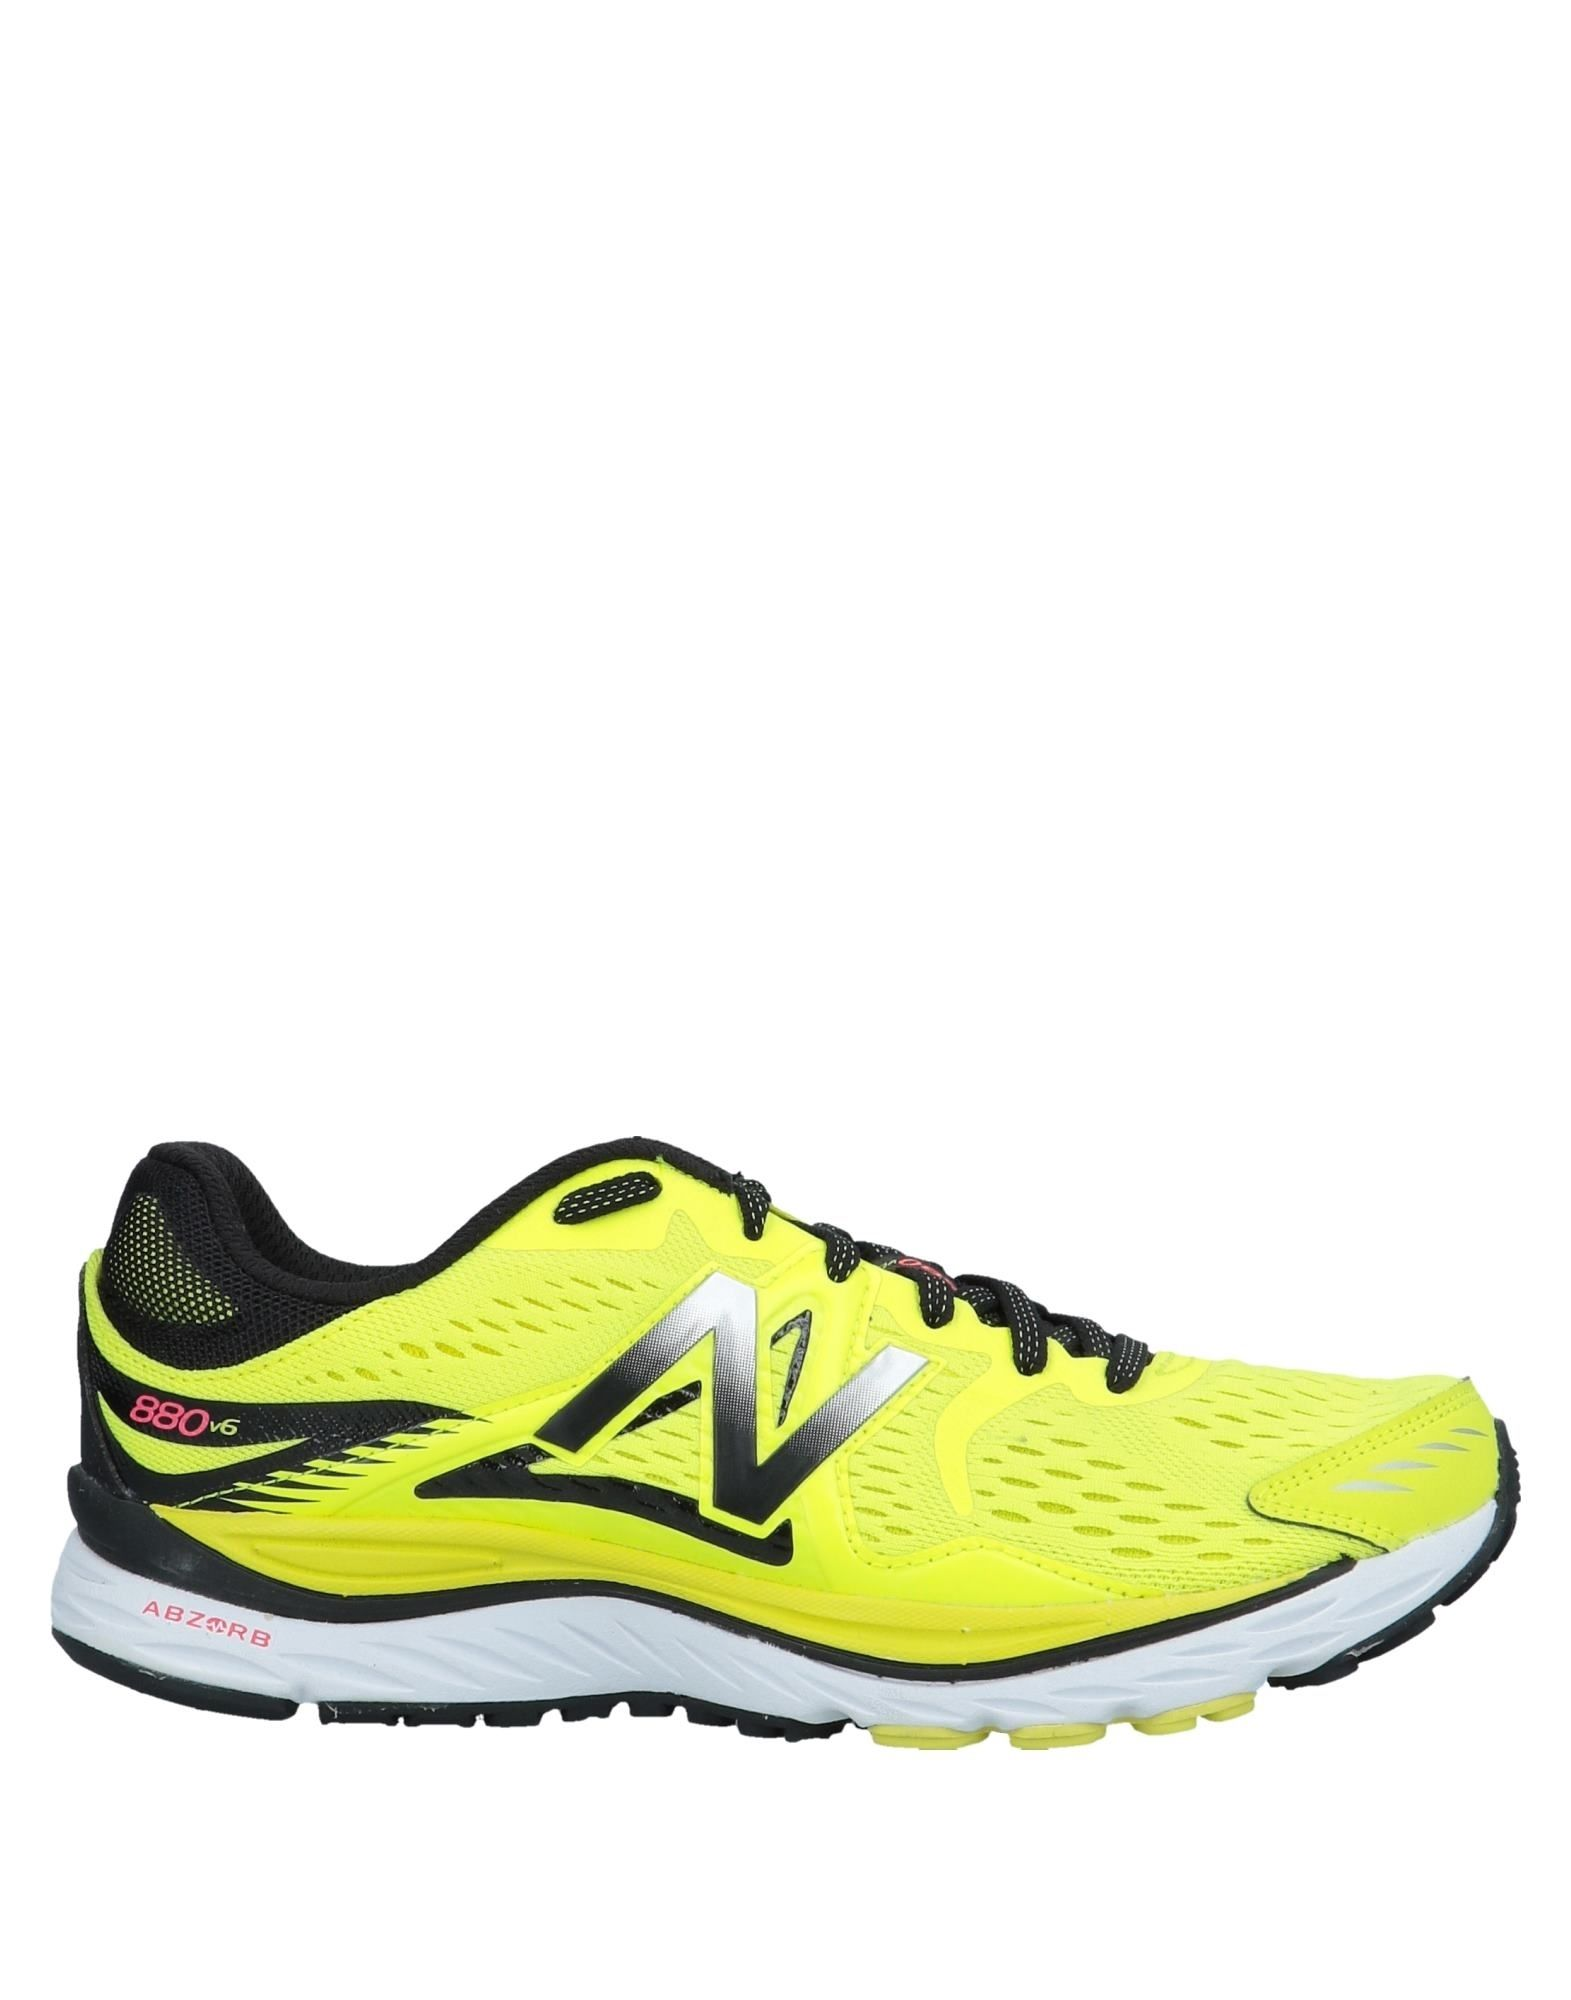 New Balance Sneakers - Men New Balance Sneakers - online on  Australia - Sneakers 11561405CB 407bf5